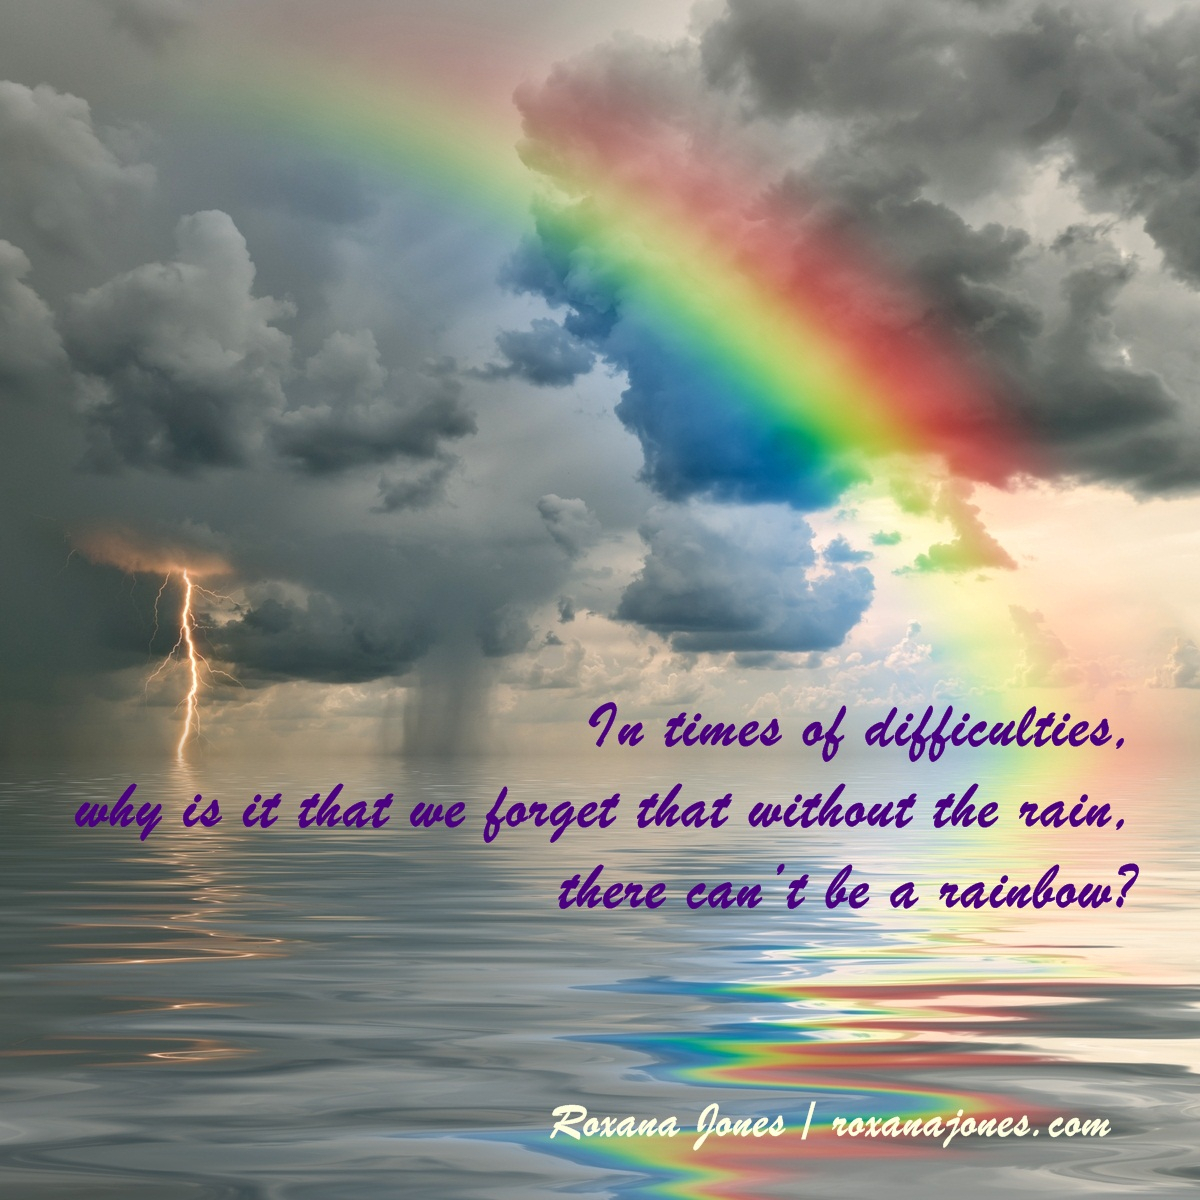 Quotes About Rainbows And Love Love Quotes About Rainbows Valentine